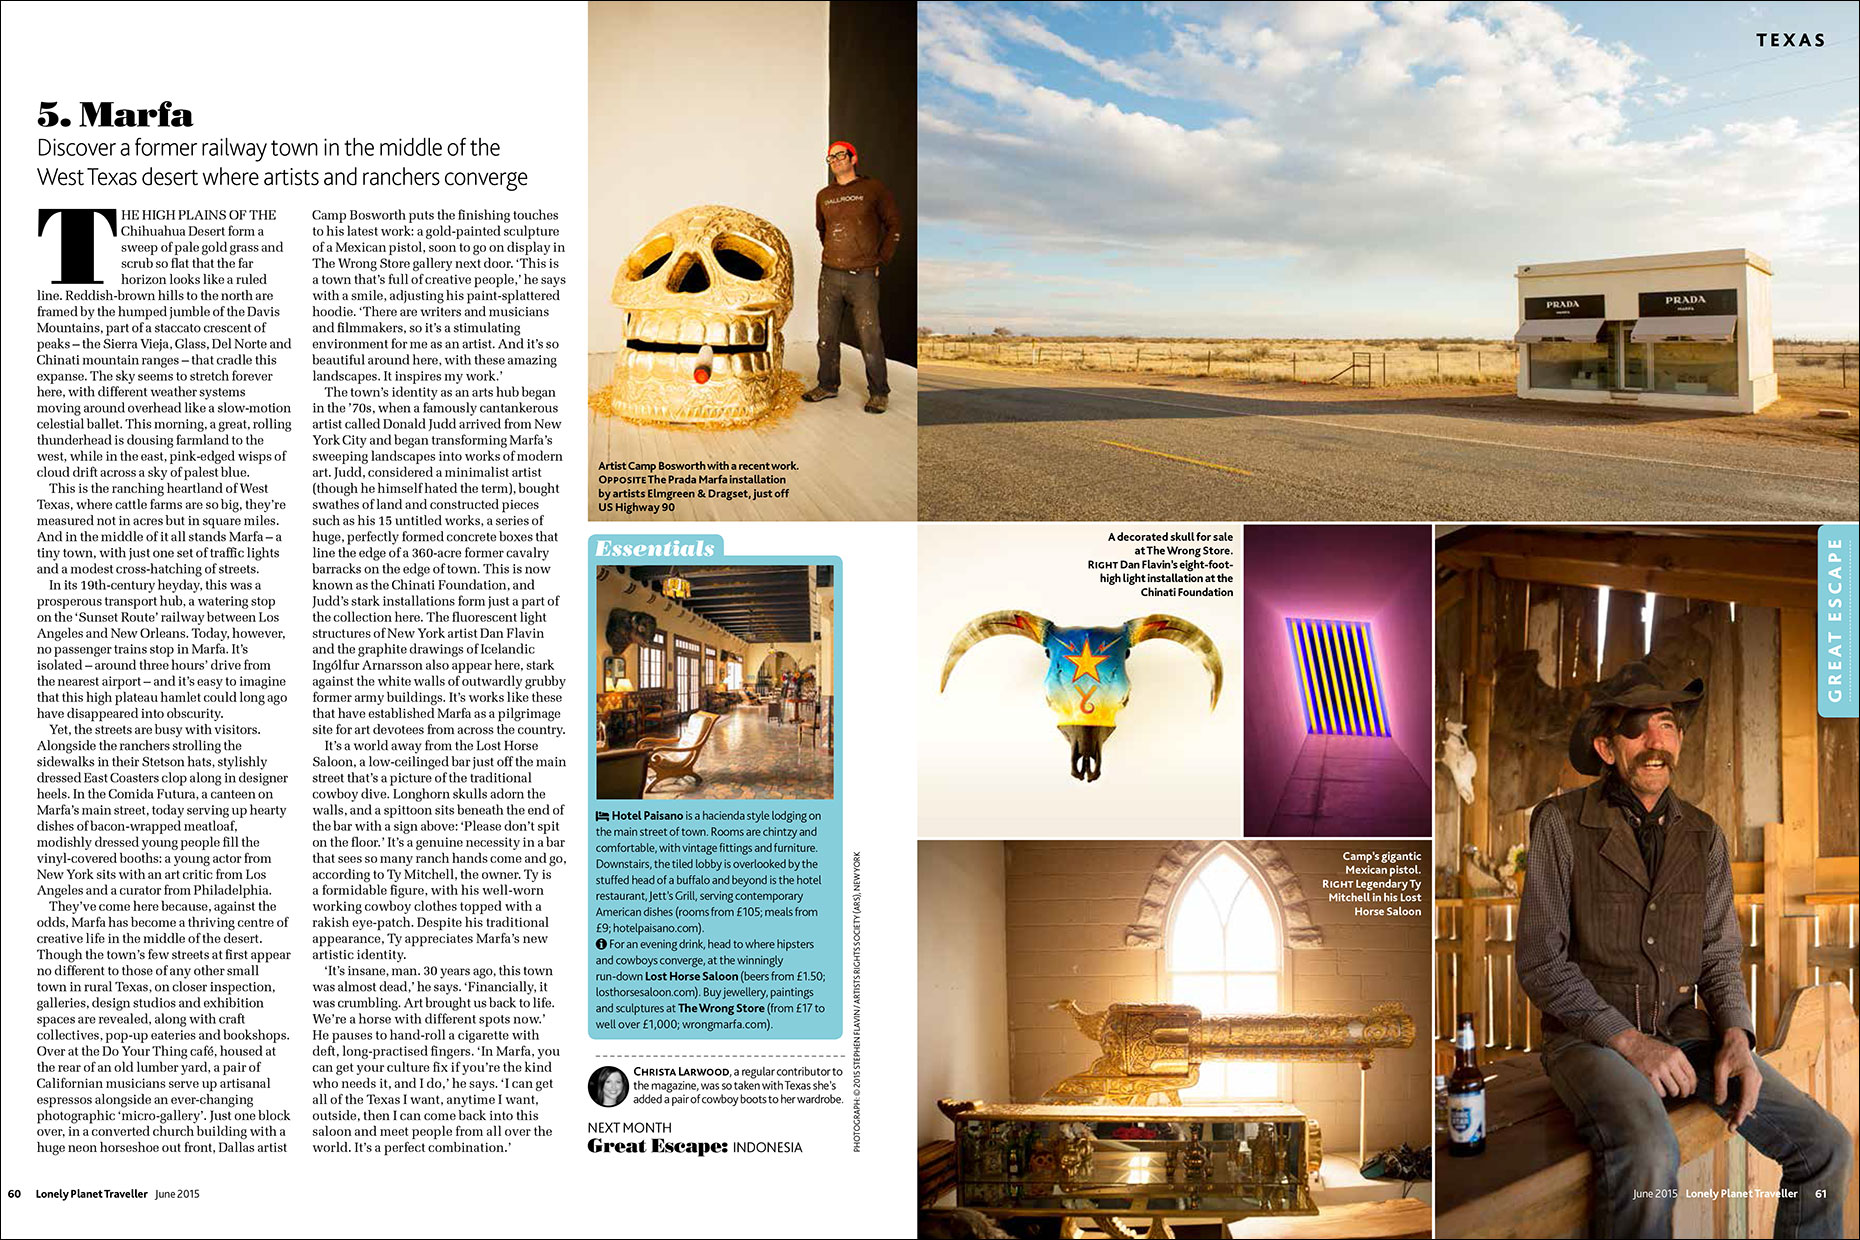 Kris_Davidson_Lonely_Planet_Traveller_Texas_6